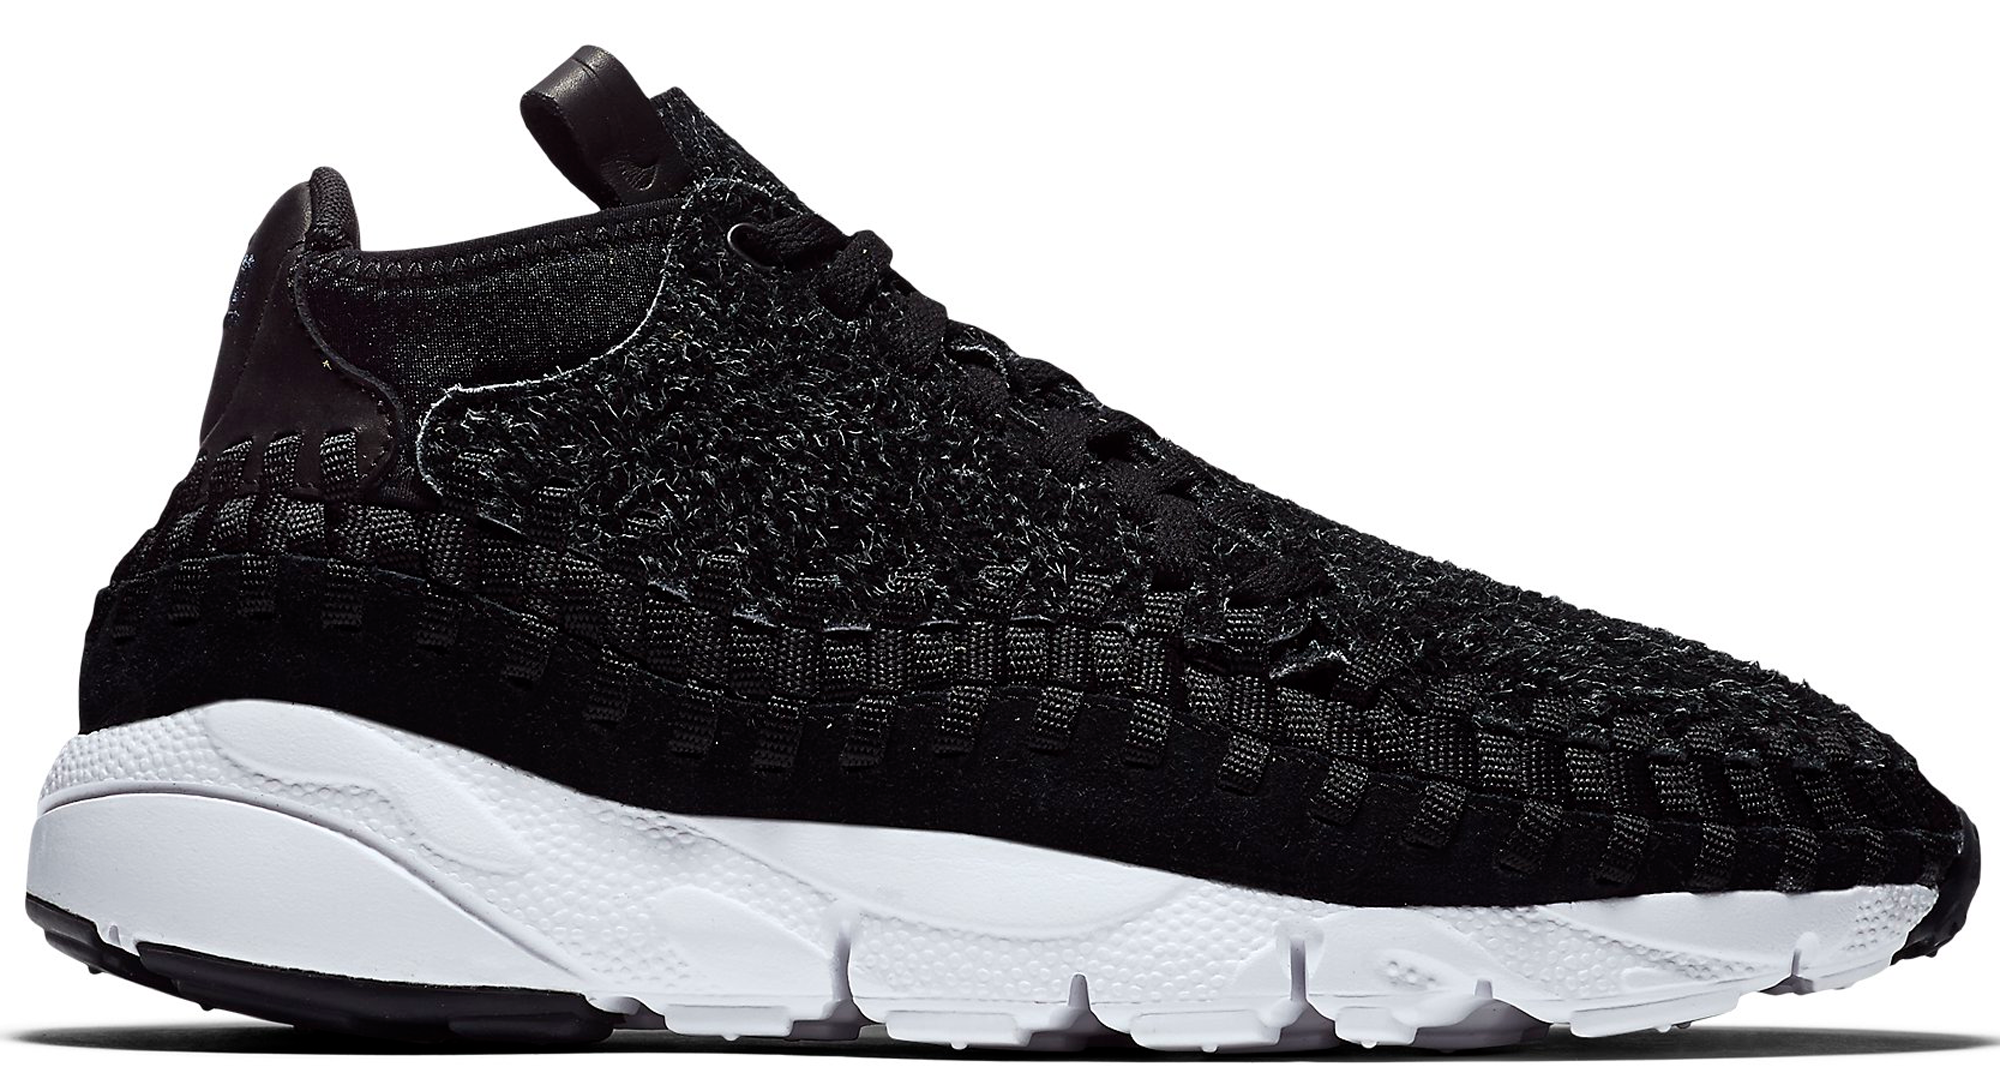 63640240a2f Nike Air Footscape Woven Chukka Black White - StockX News